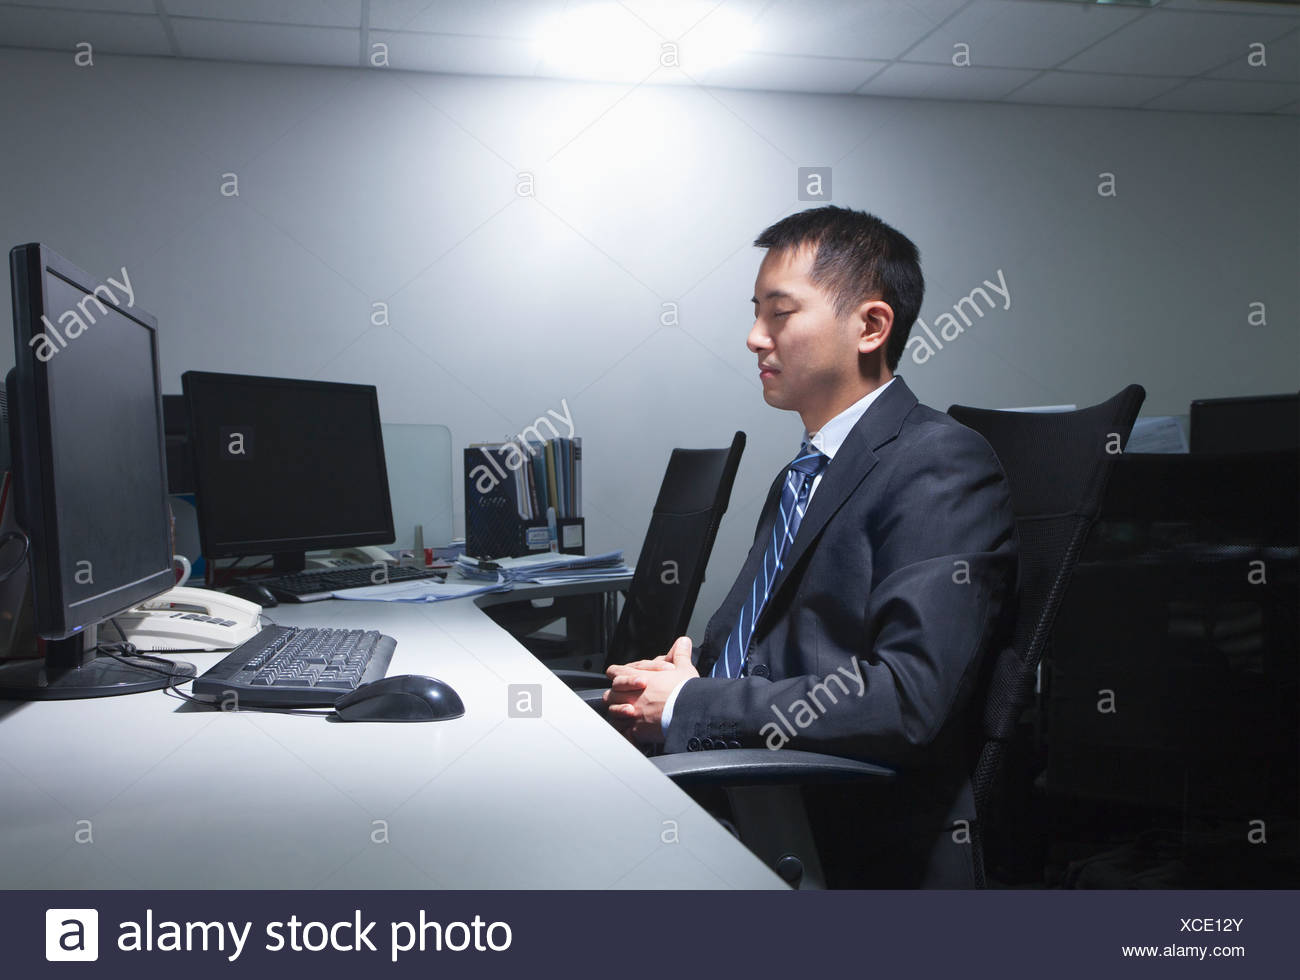 White-collar worker sitting in office - Stock Image